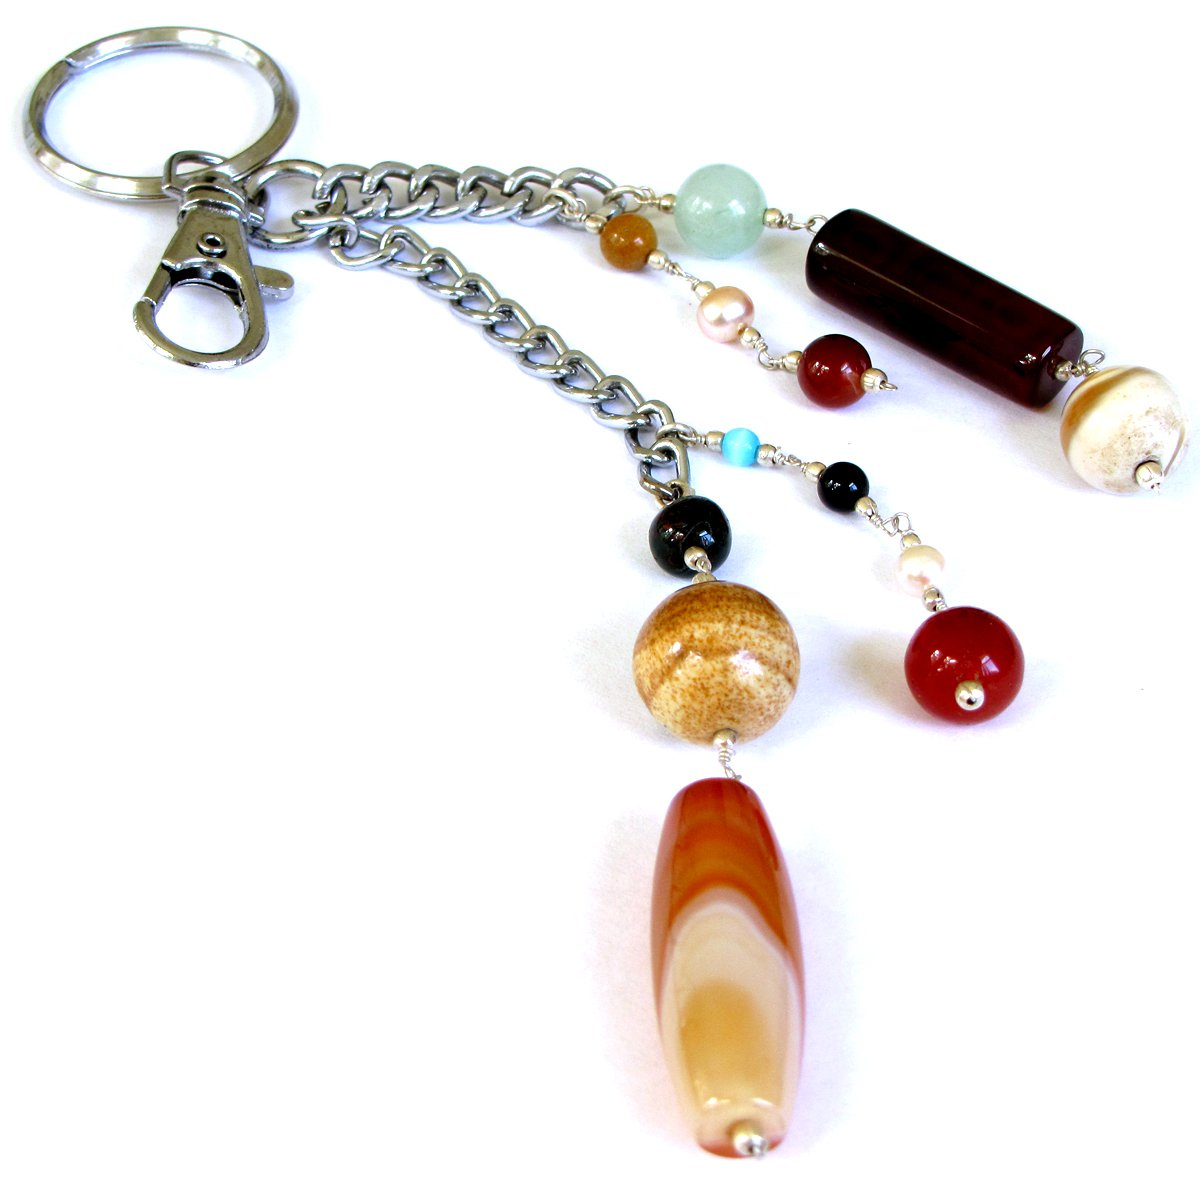 Keychains Mom gift ideas handmade key fob chain ring 4.5in mixed semi precious stones carnelian